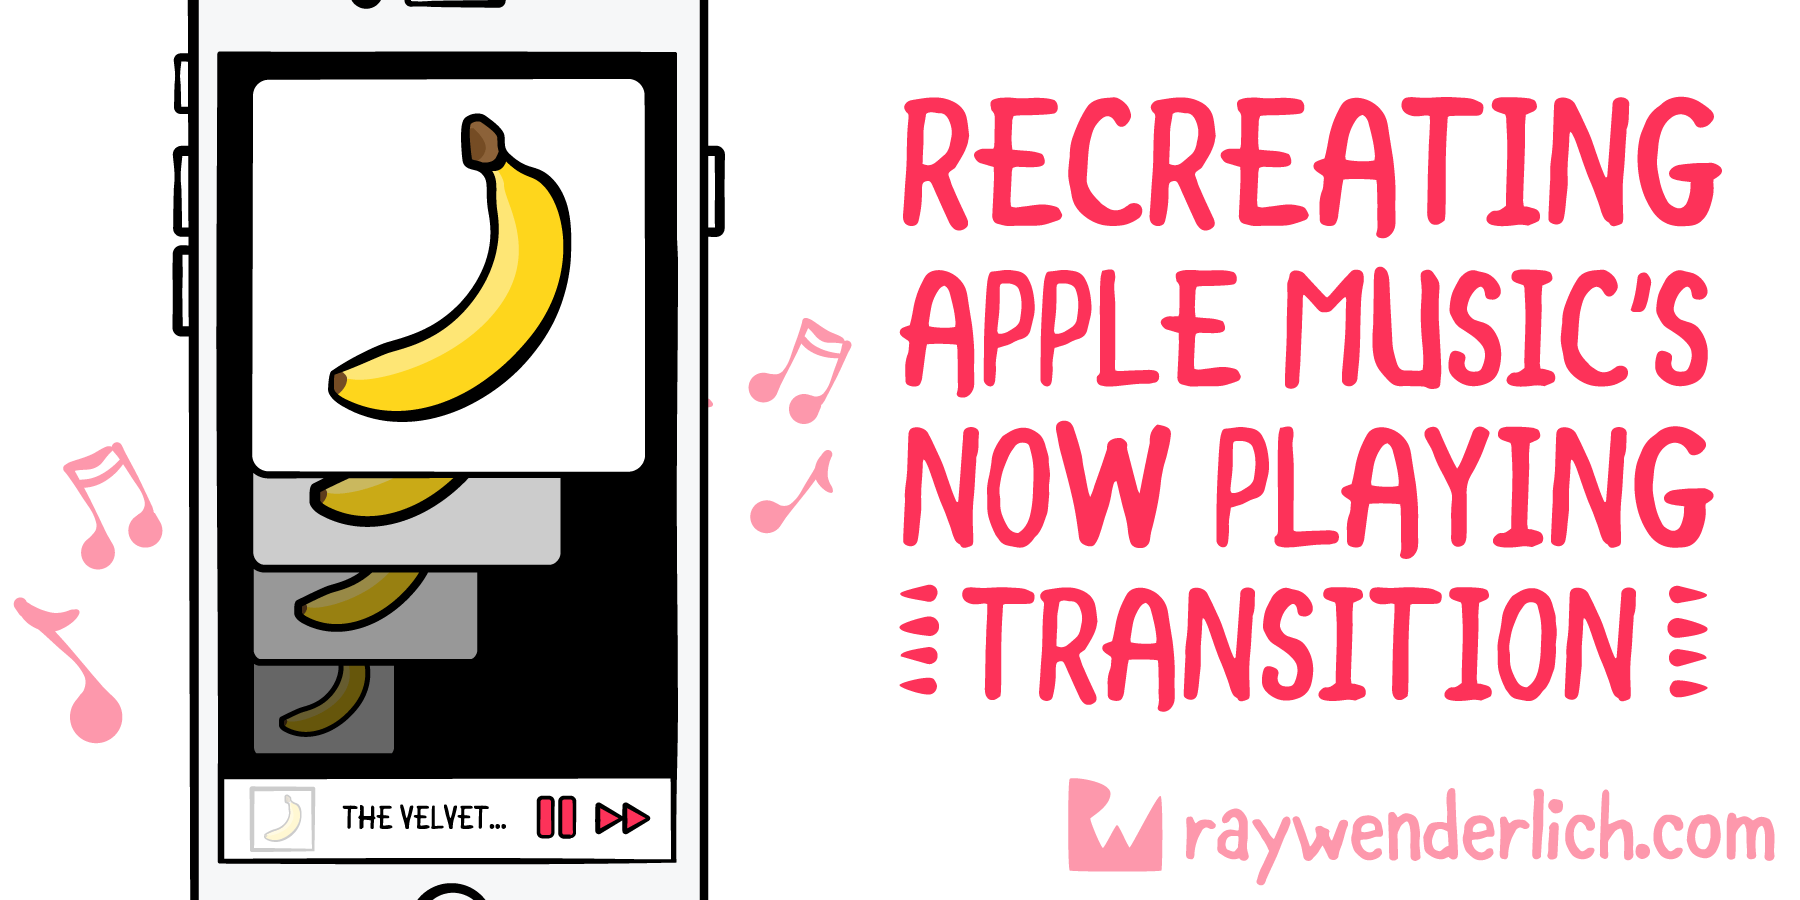 Recreating the Apple Music Now Playing Transition | raywenderlich com